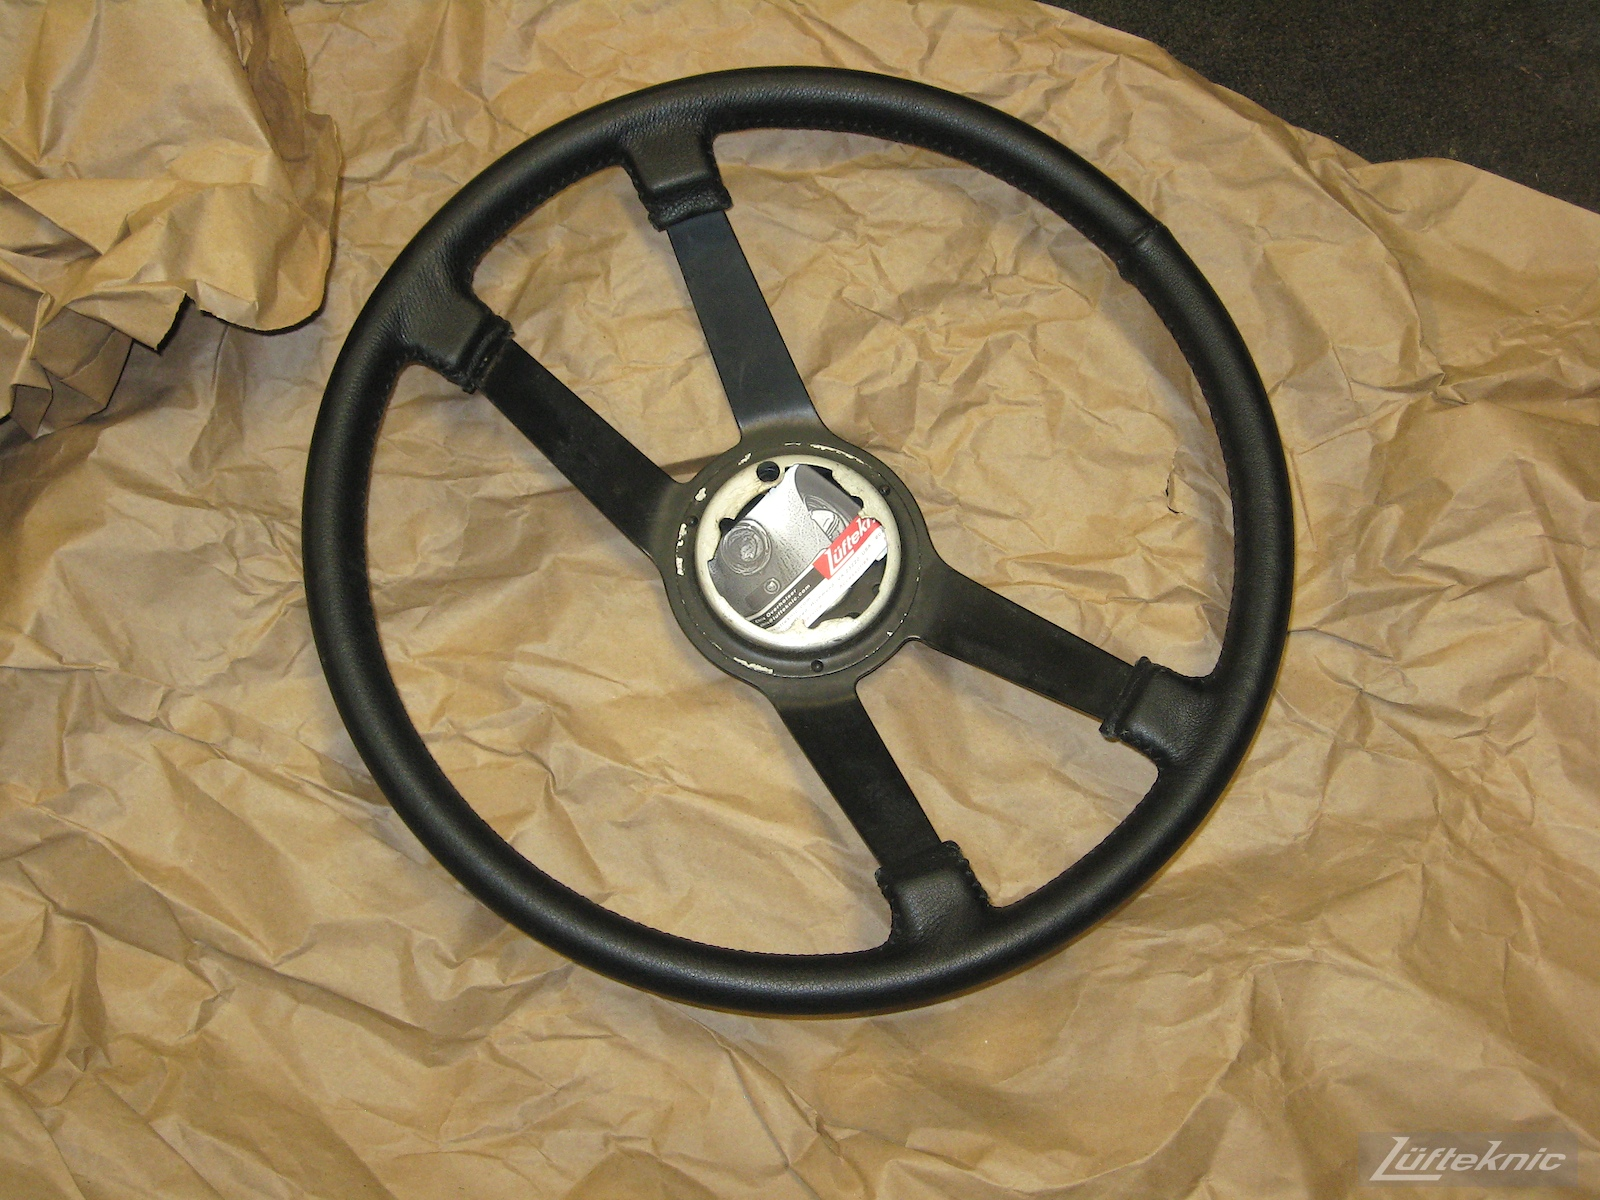 Refinished steering wheel for a 914 sitting on packing paper.